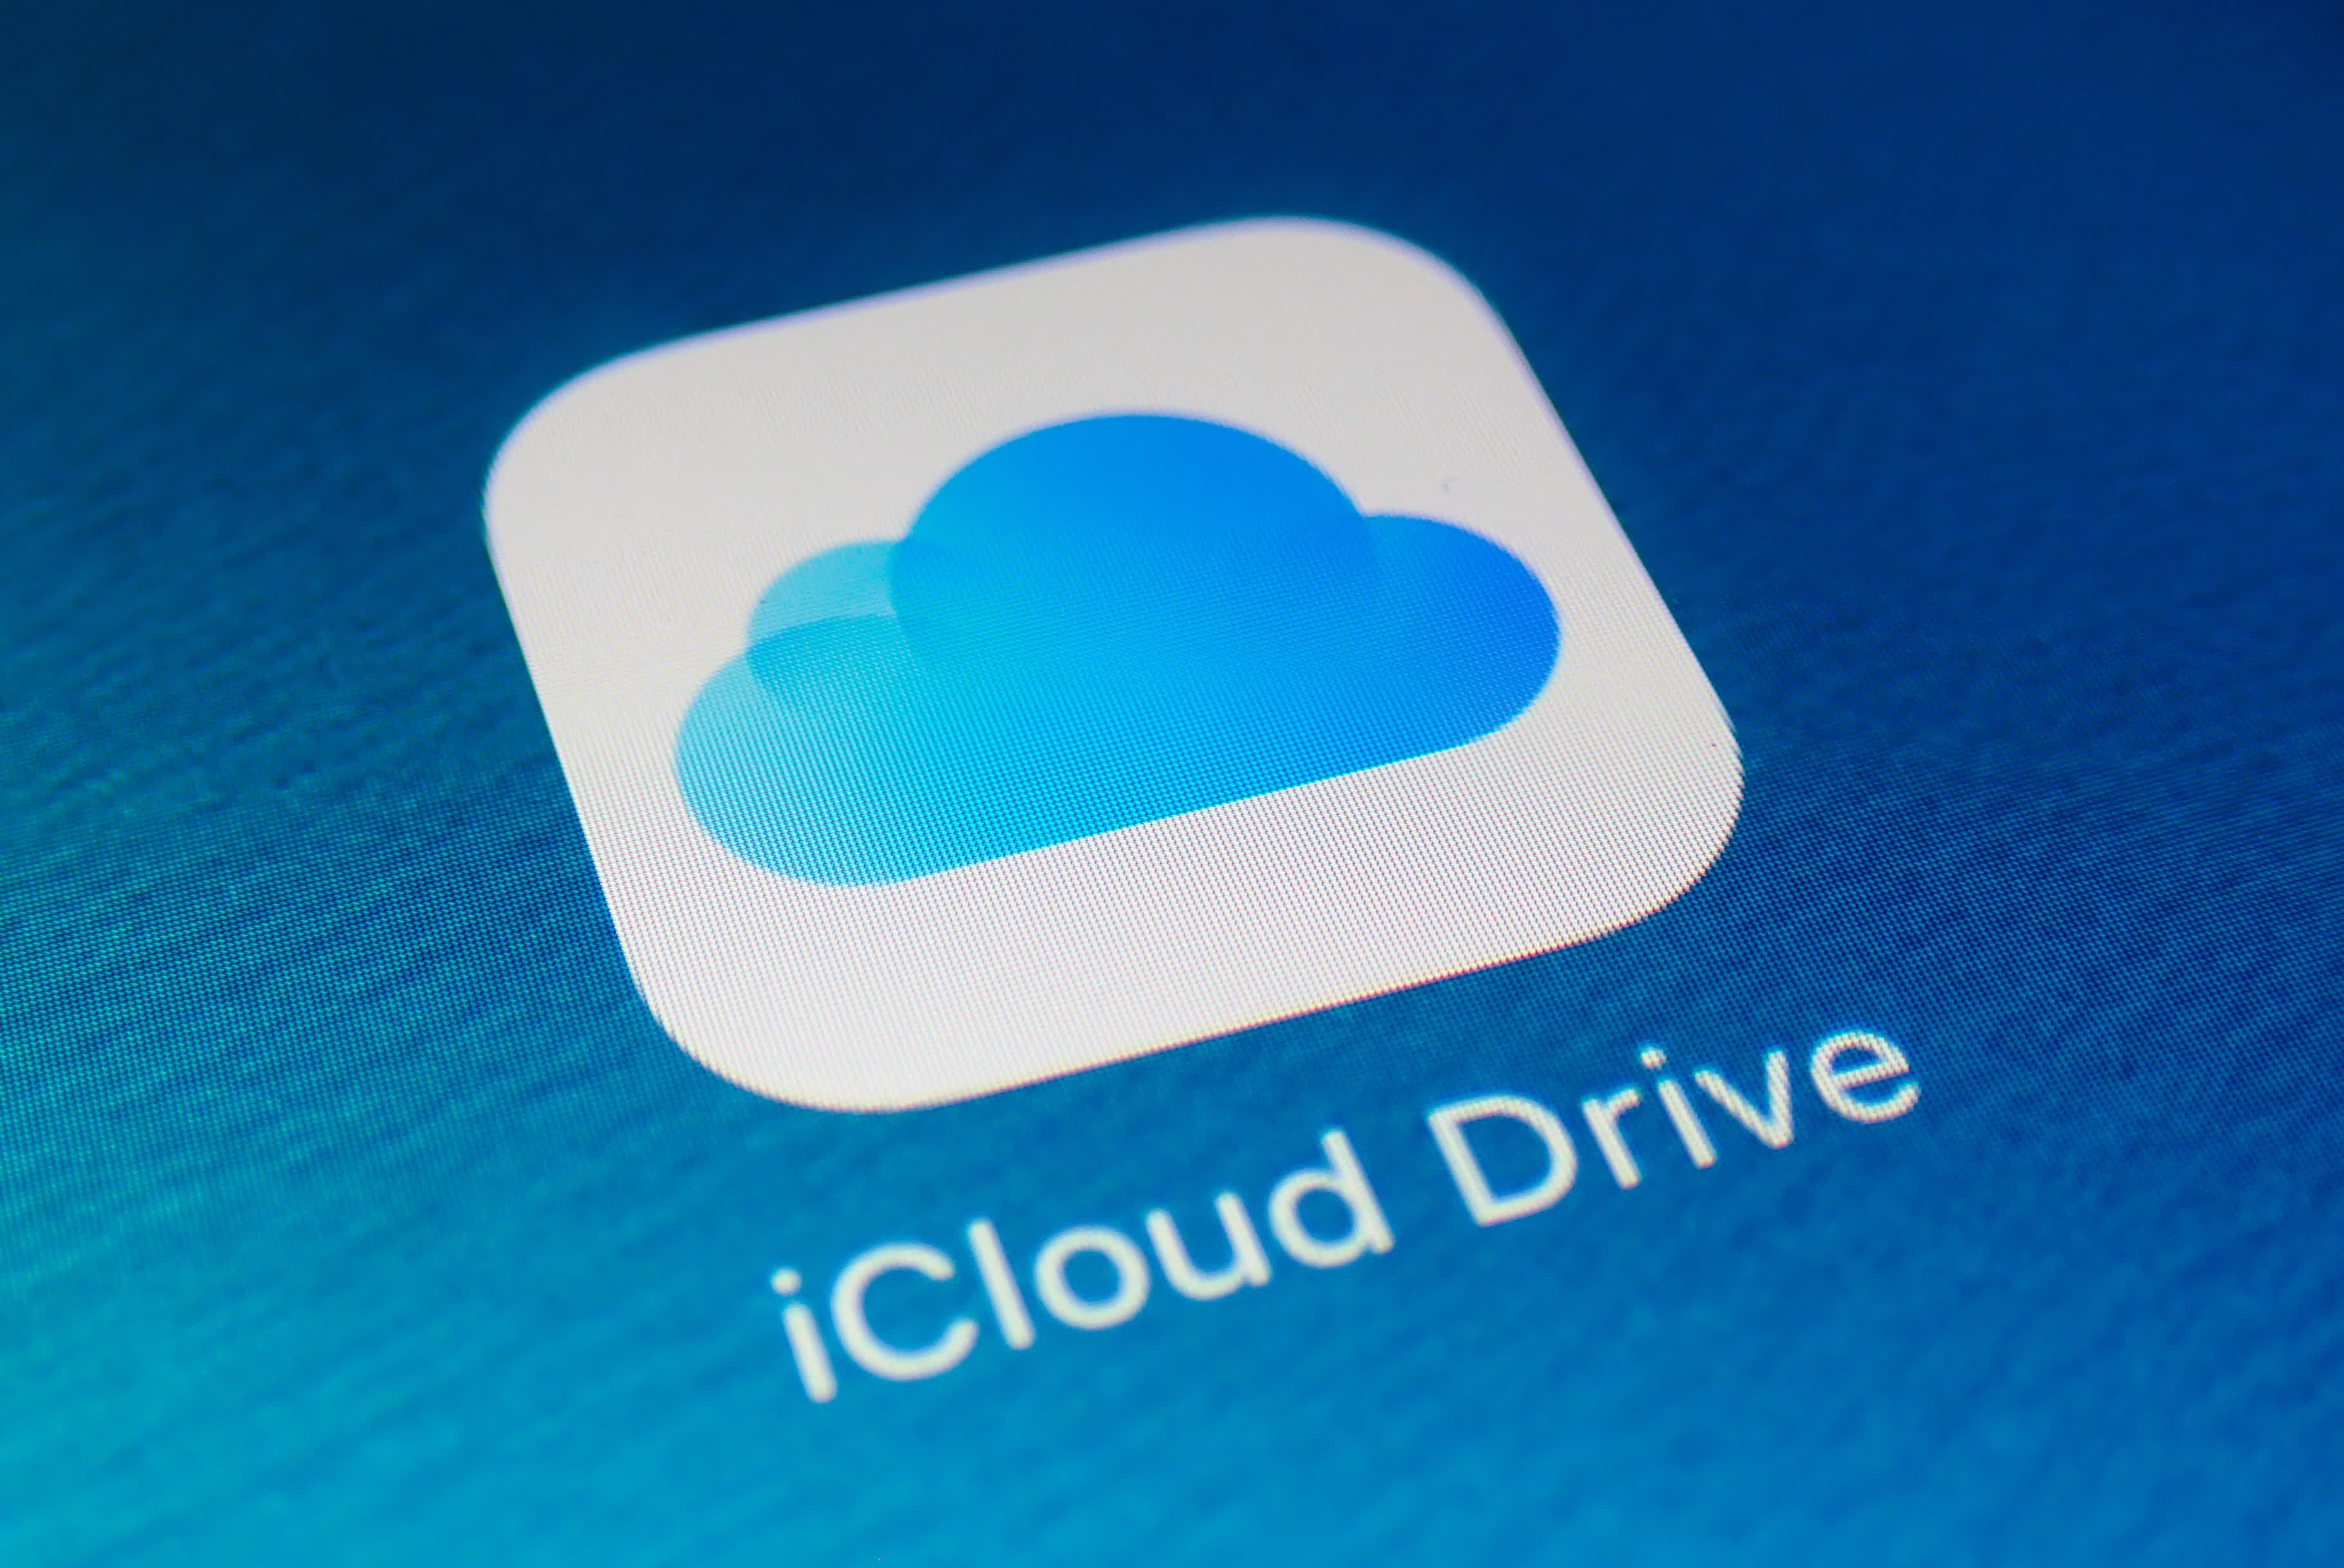 Man posing as Apple support rep scoured hundreds of iCloud accounts for nude images